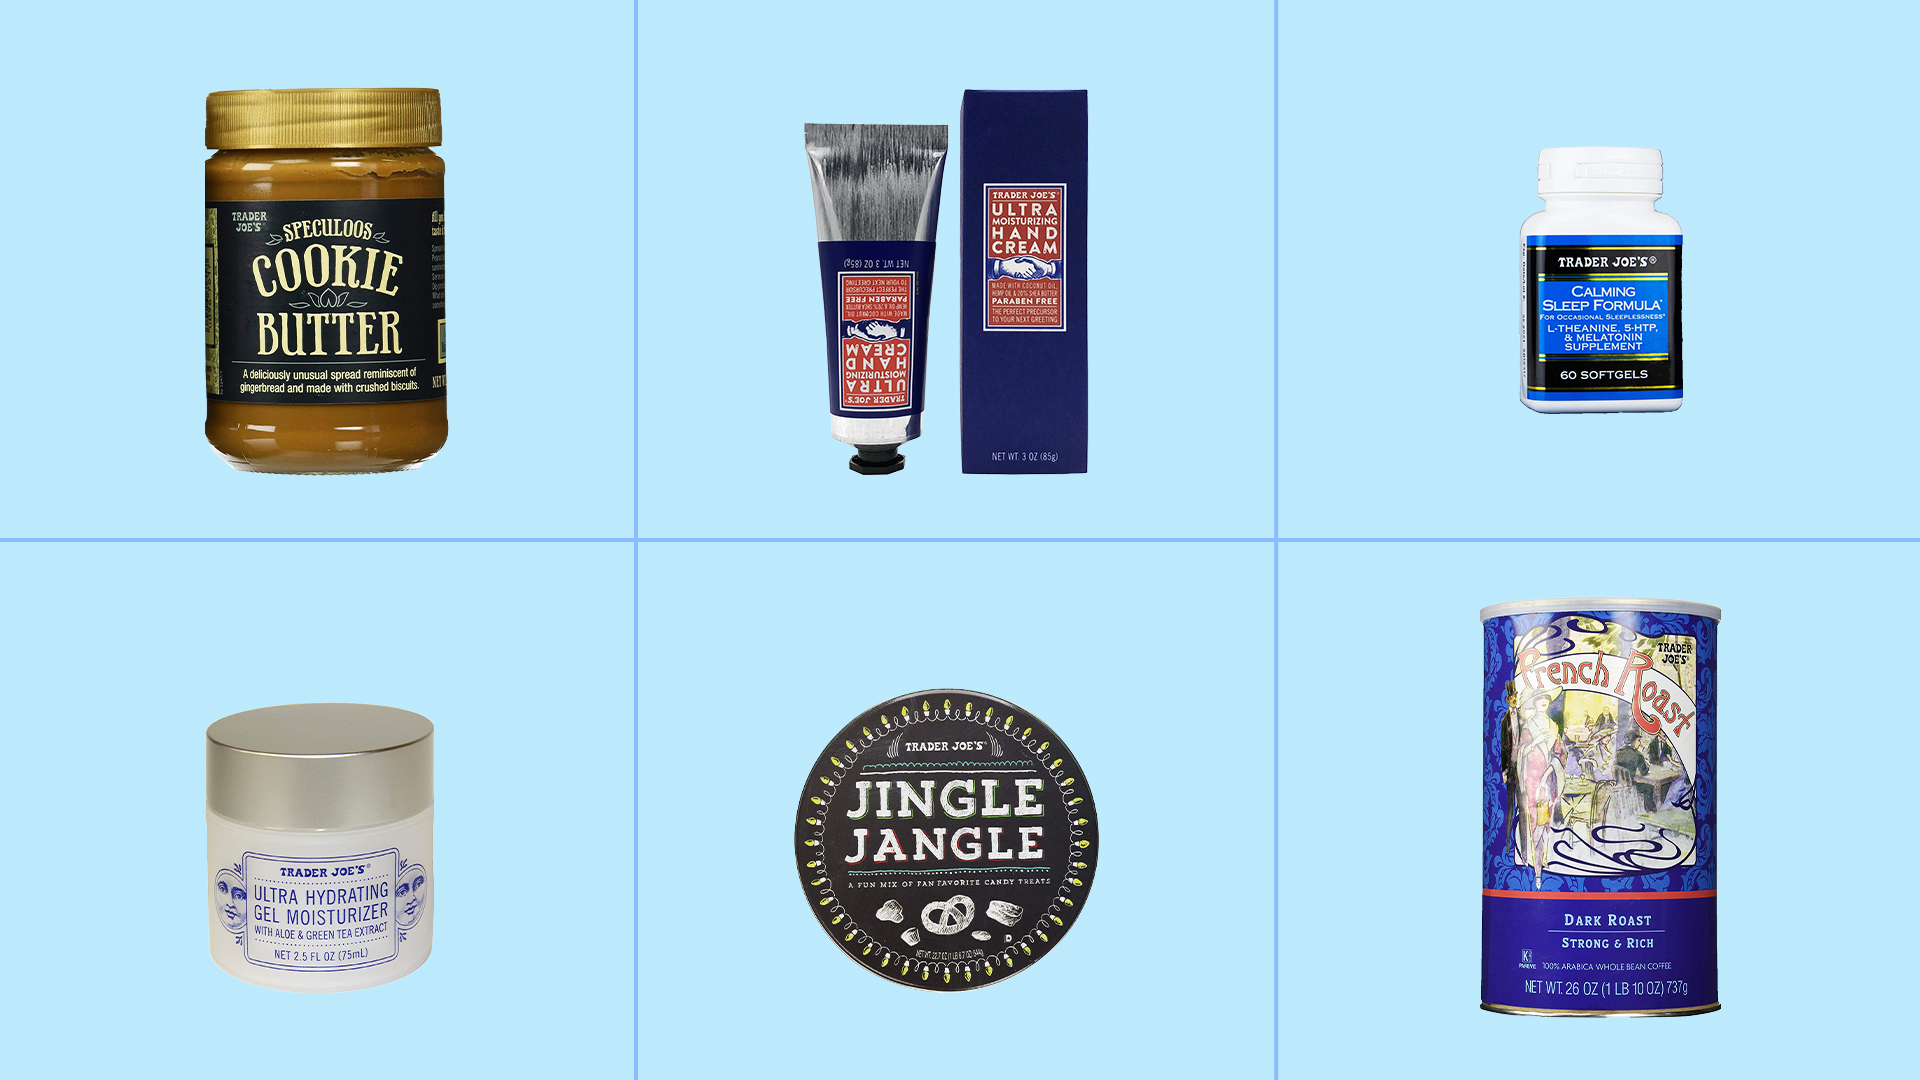 The Trader Joe's Products You Can Buy on Amazon